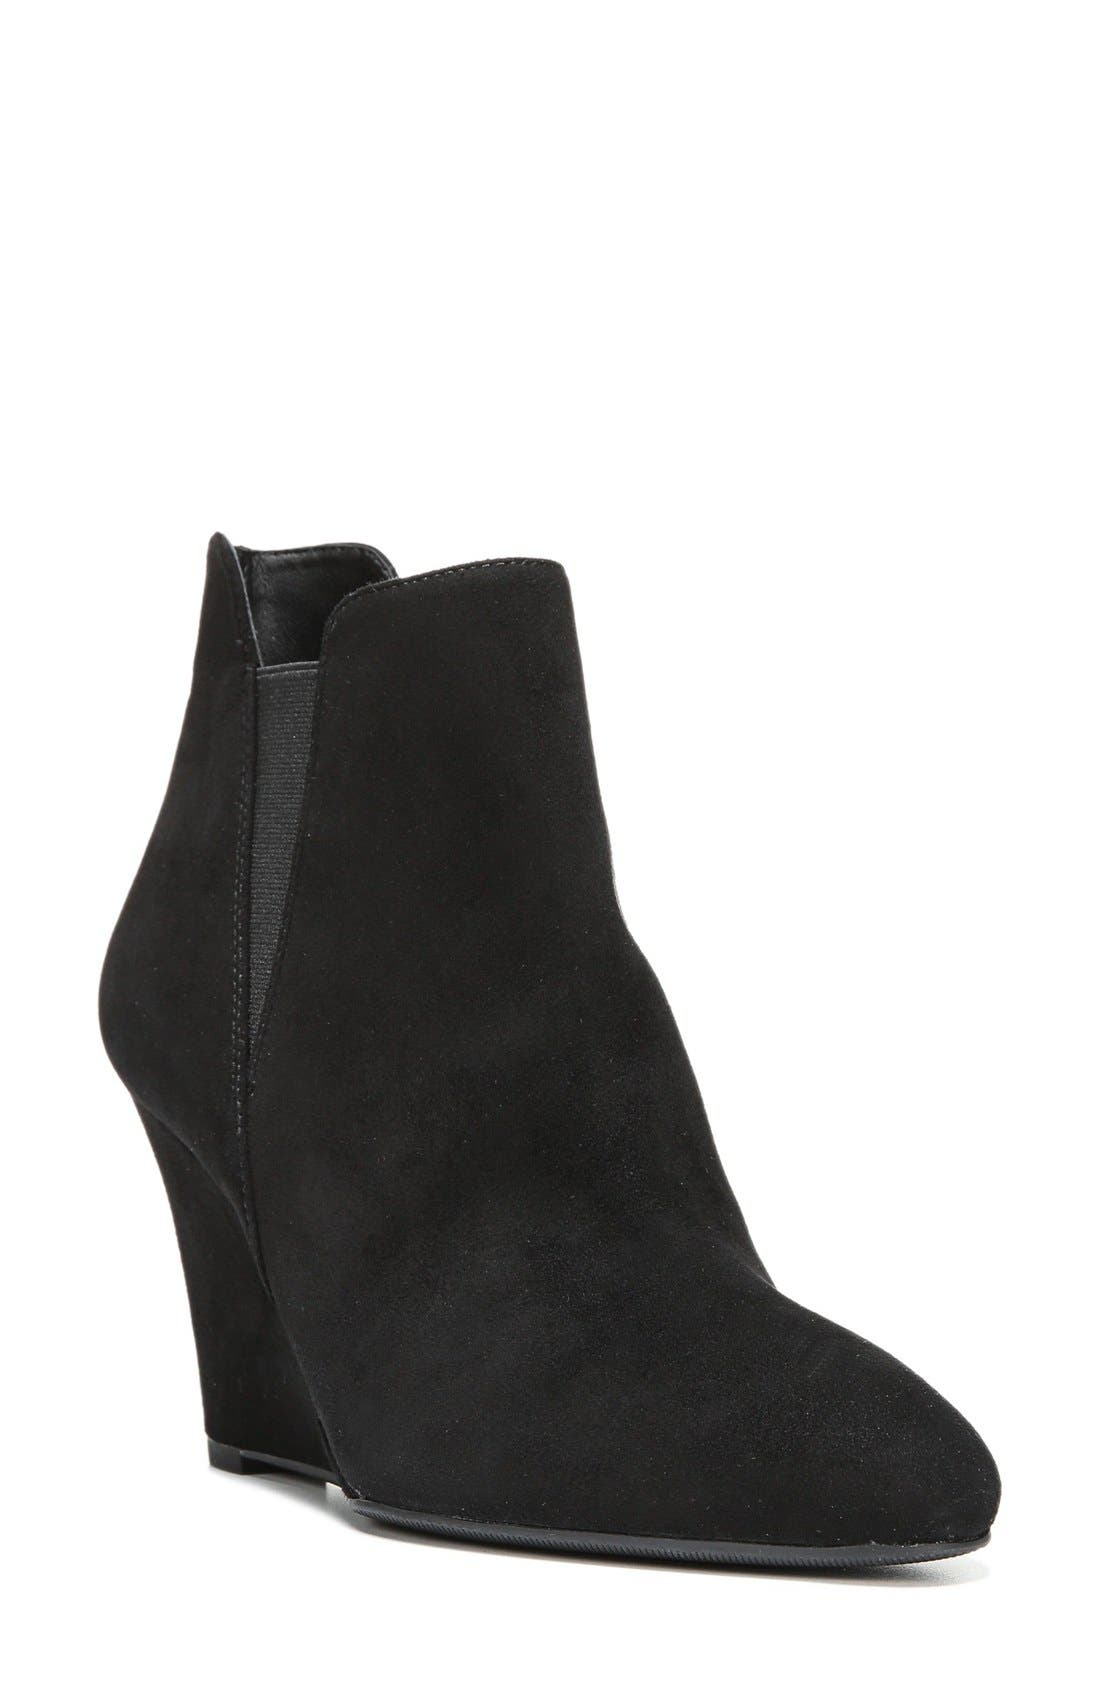 'Kenzie' Wedge Bootie,                         Main,                         color, 002